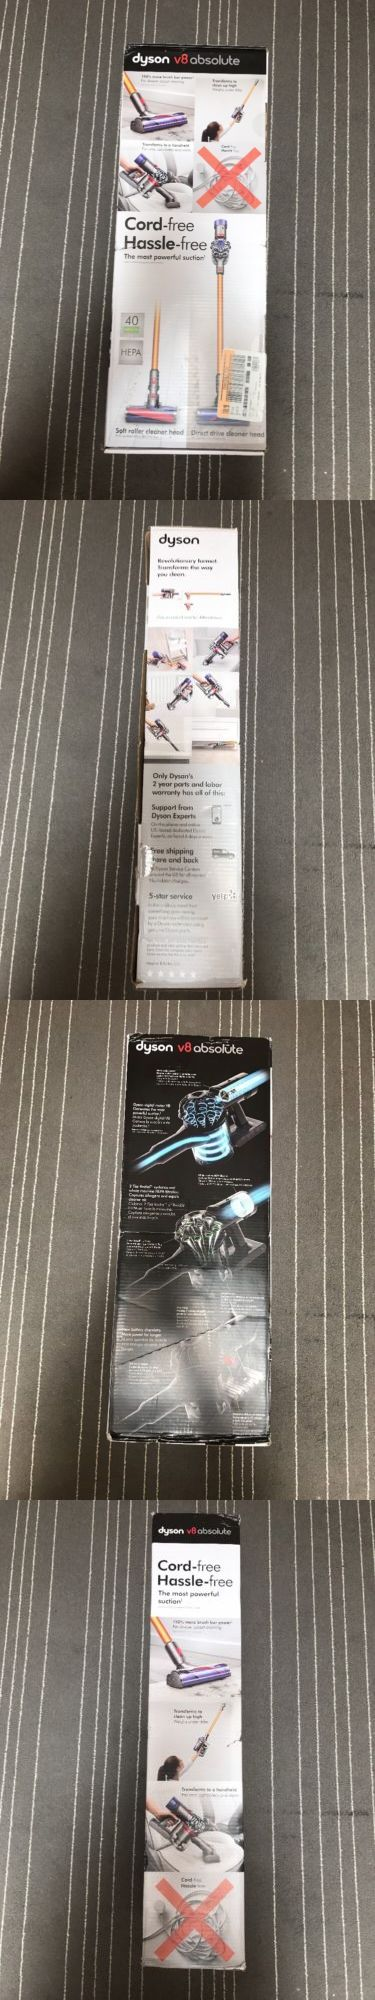 Home Automation Kits: New Dyson V8 Absolute Cordless Vaccum, Warranty, Free Shipping! -> BUY IT NOW ONLY: $494.97 on eBay!